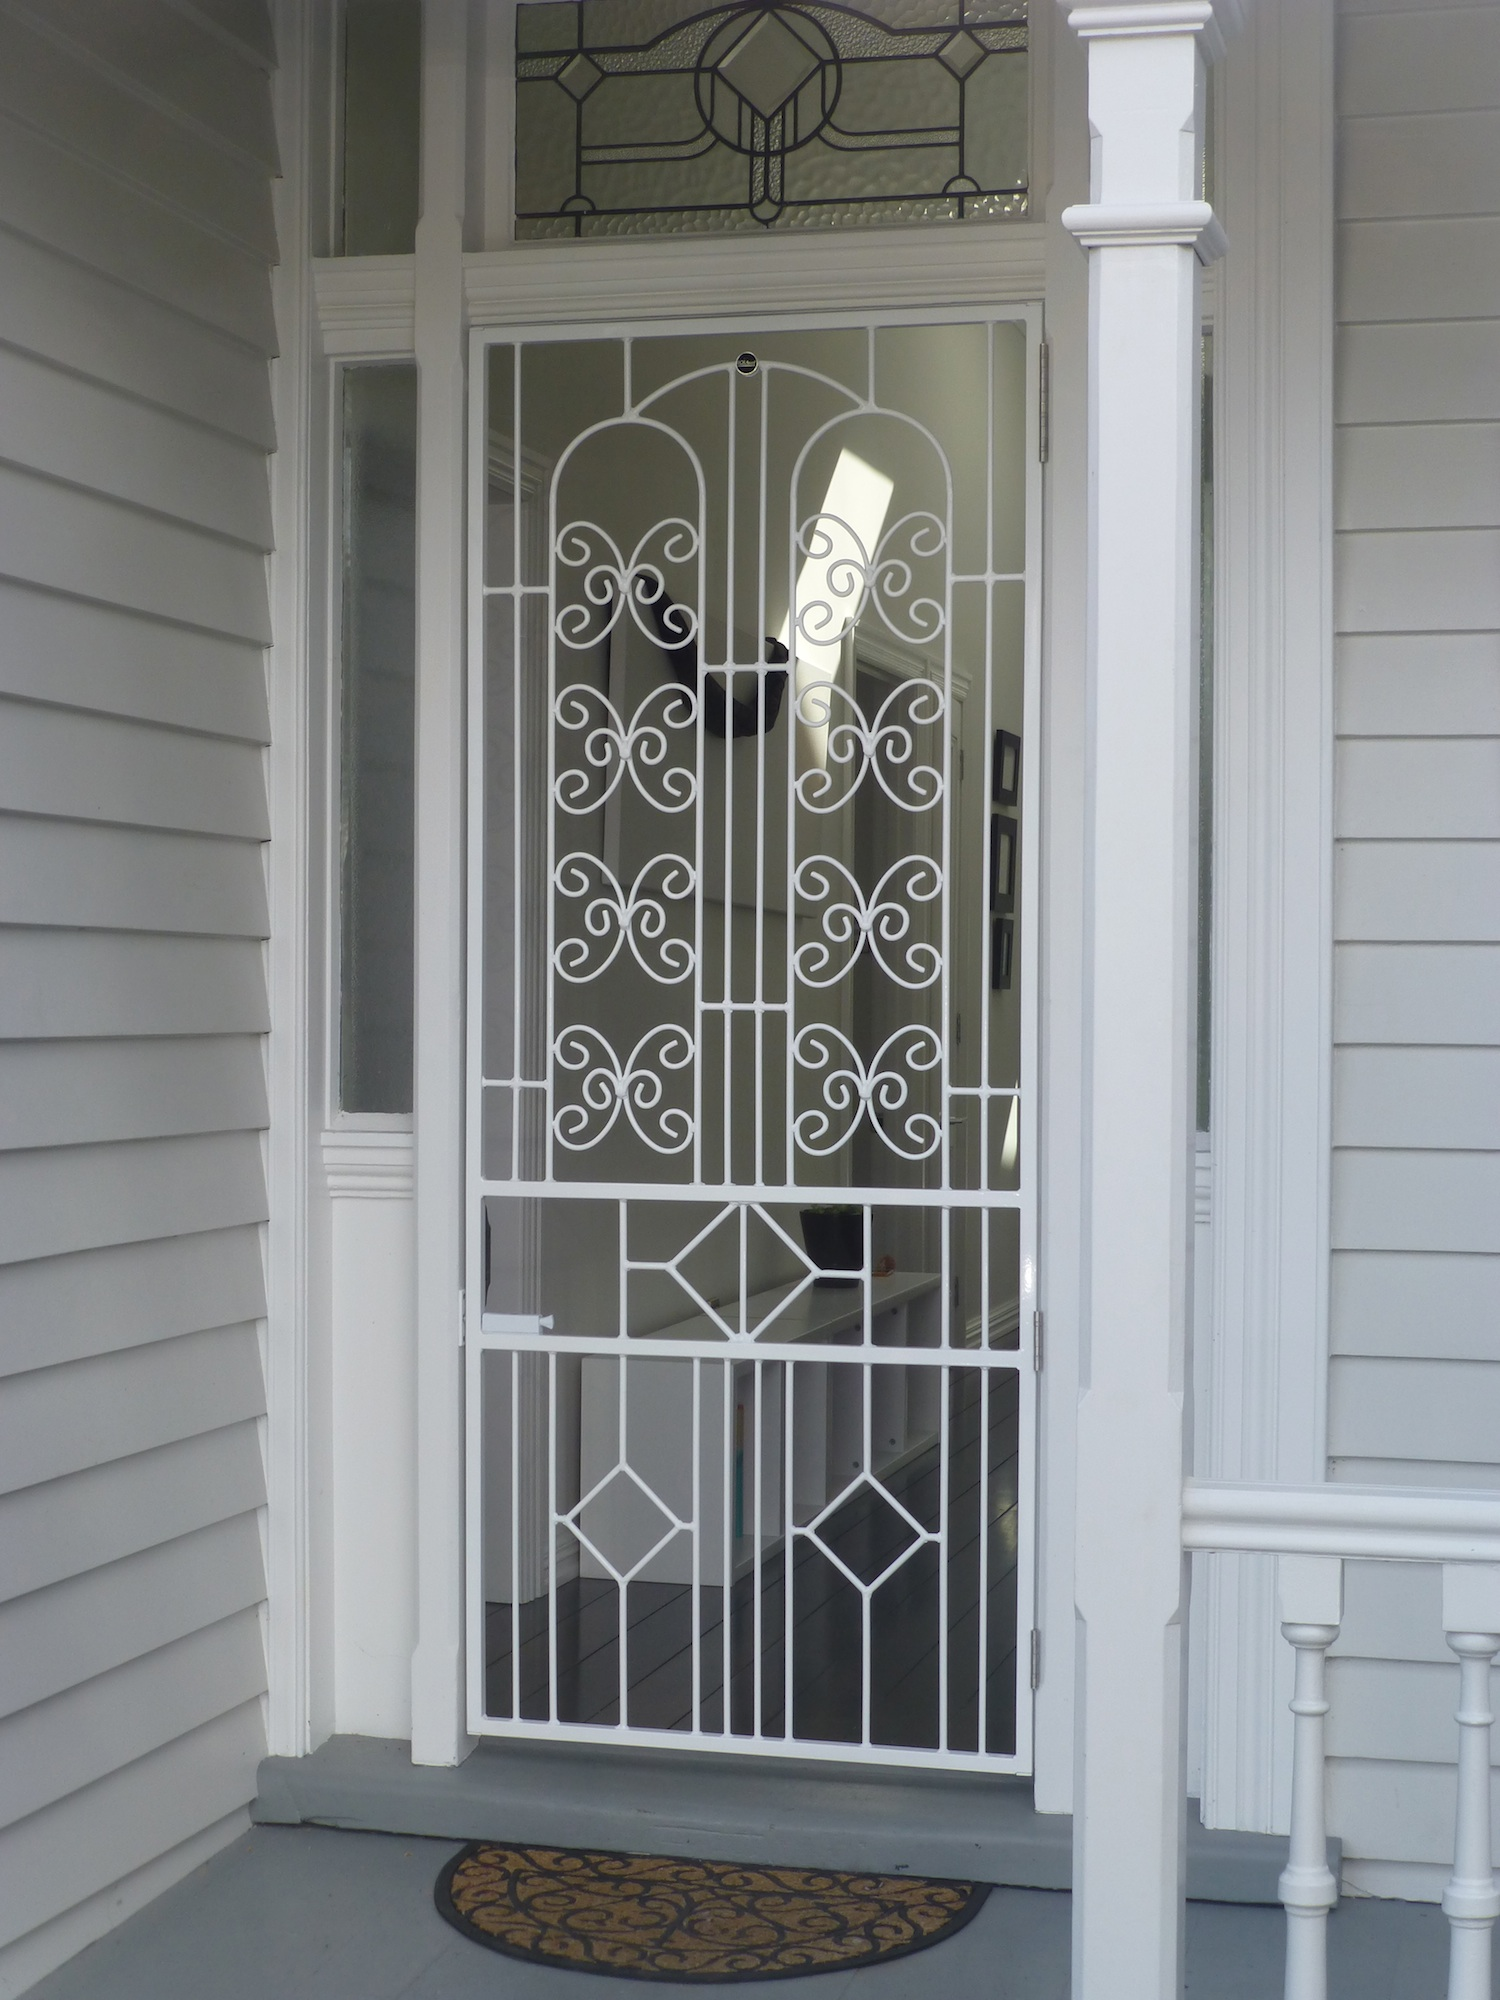 Dora doors designer security doors for Door patterns home